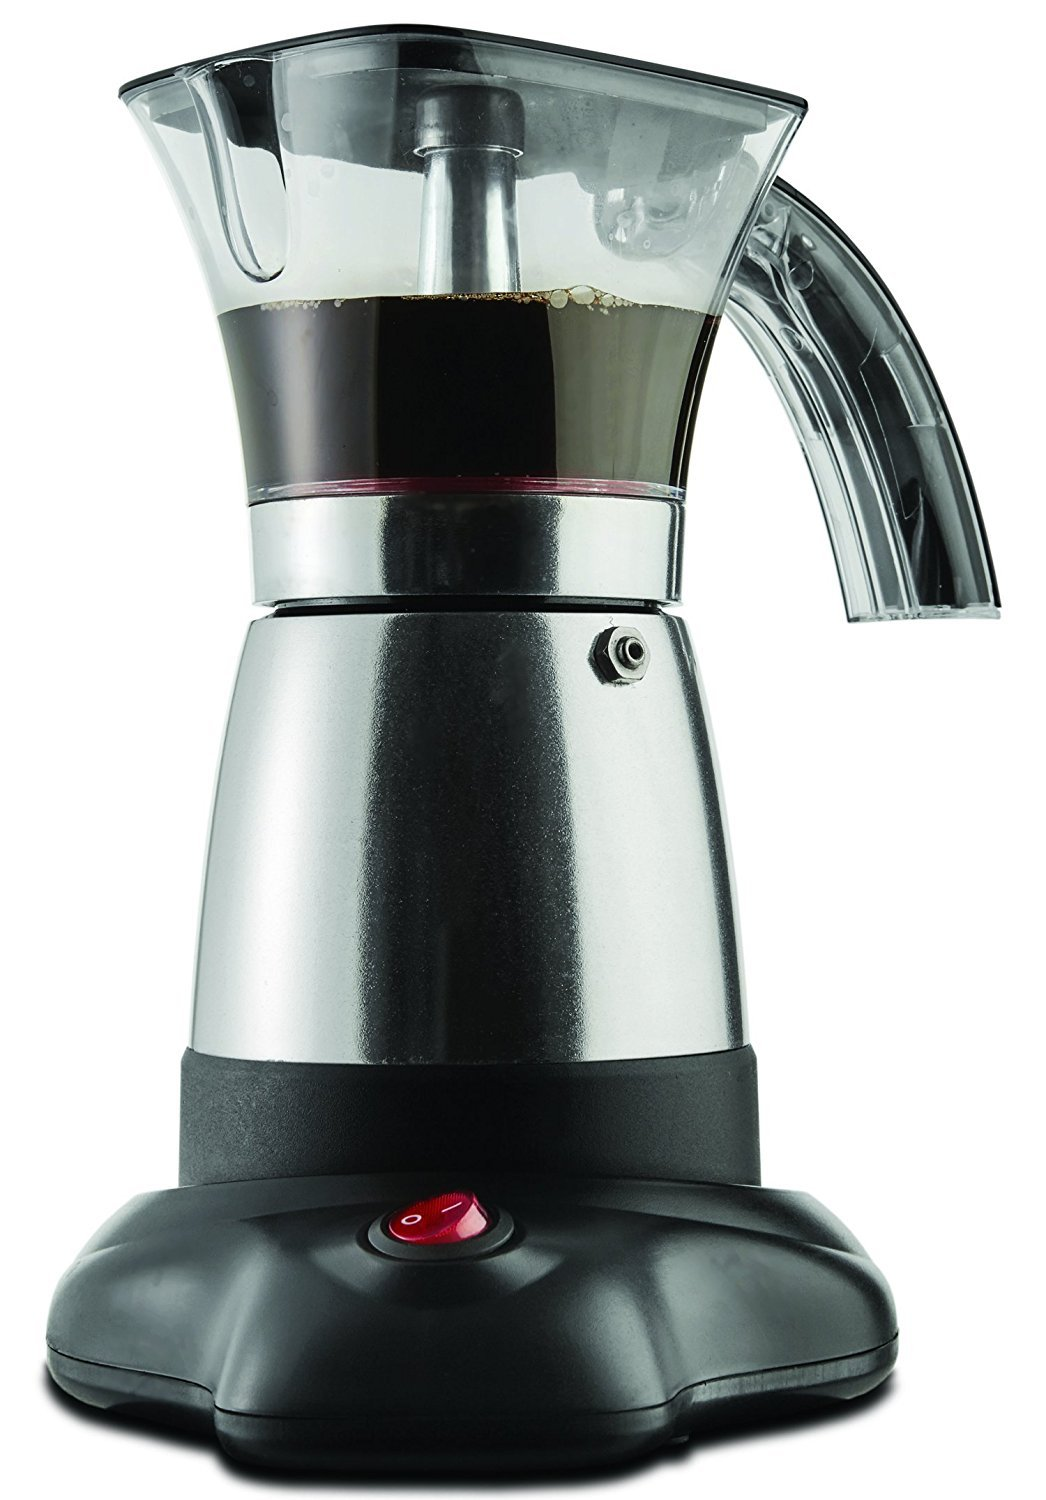 Brentwood Electric 6 Cup Moka Espresso Maker in Silver - 6.5